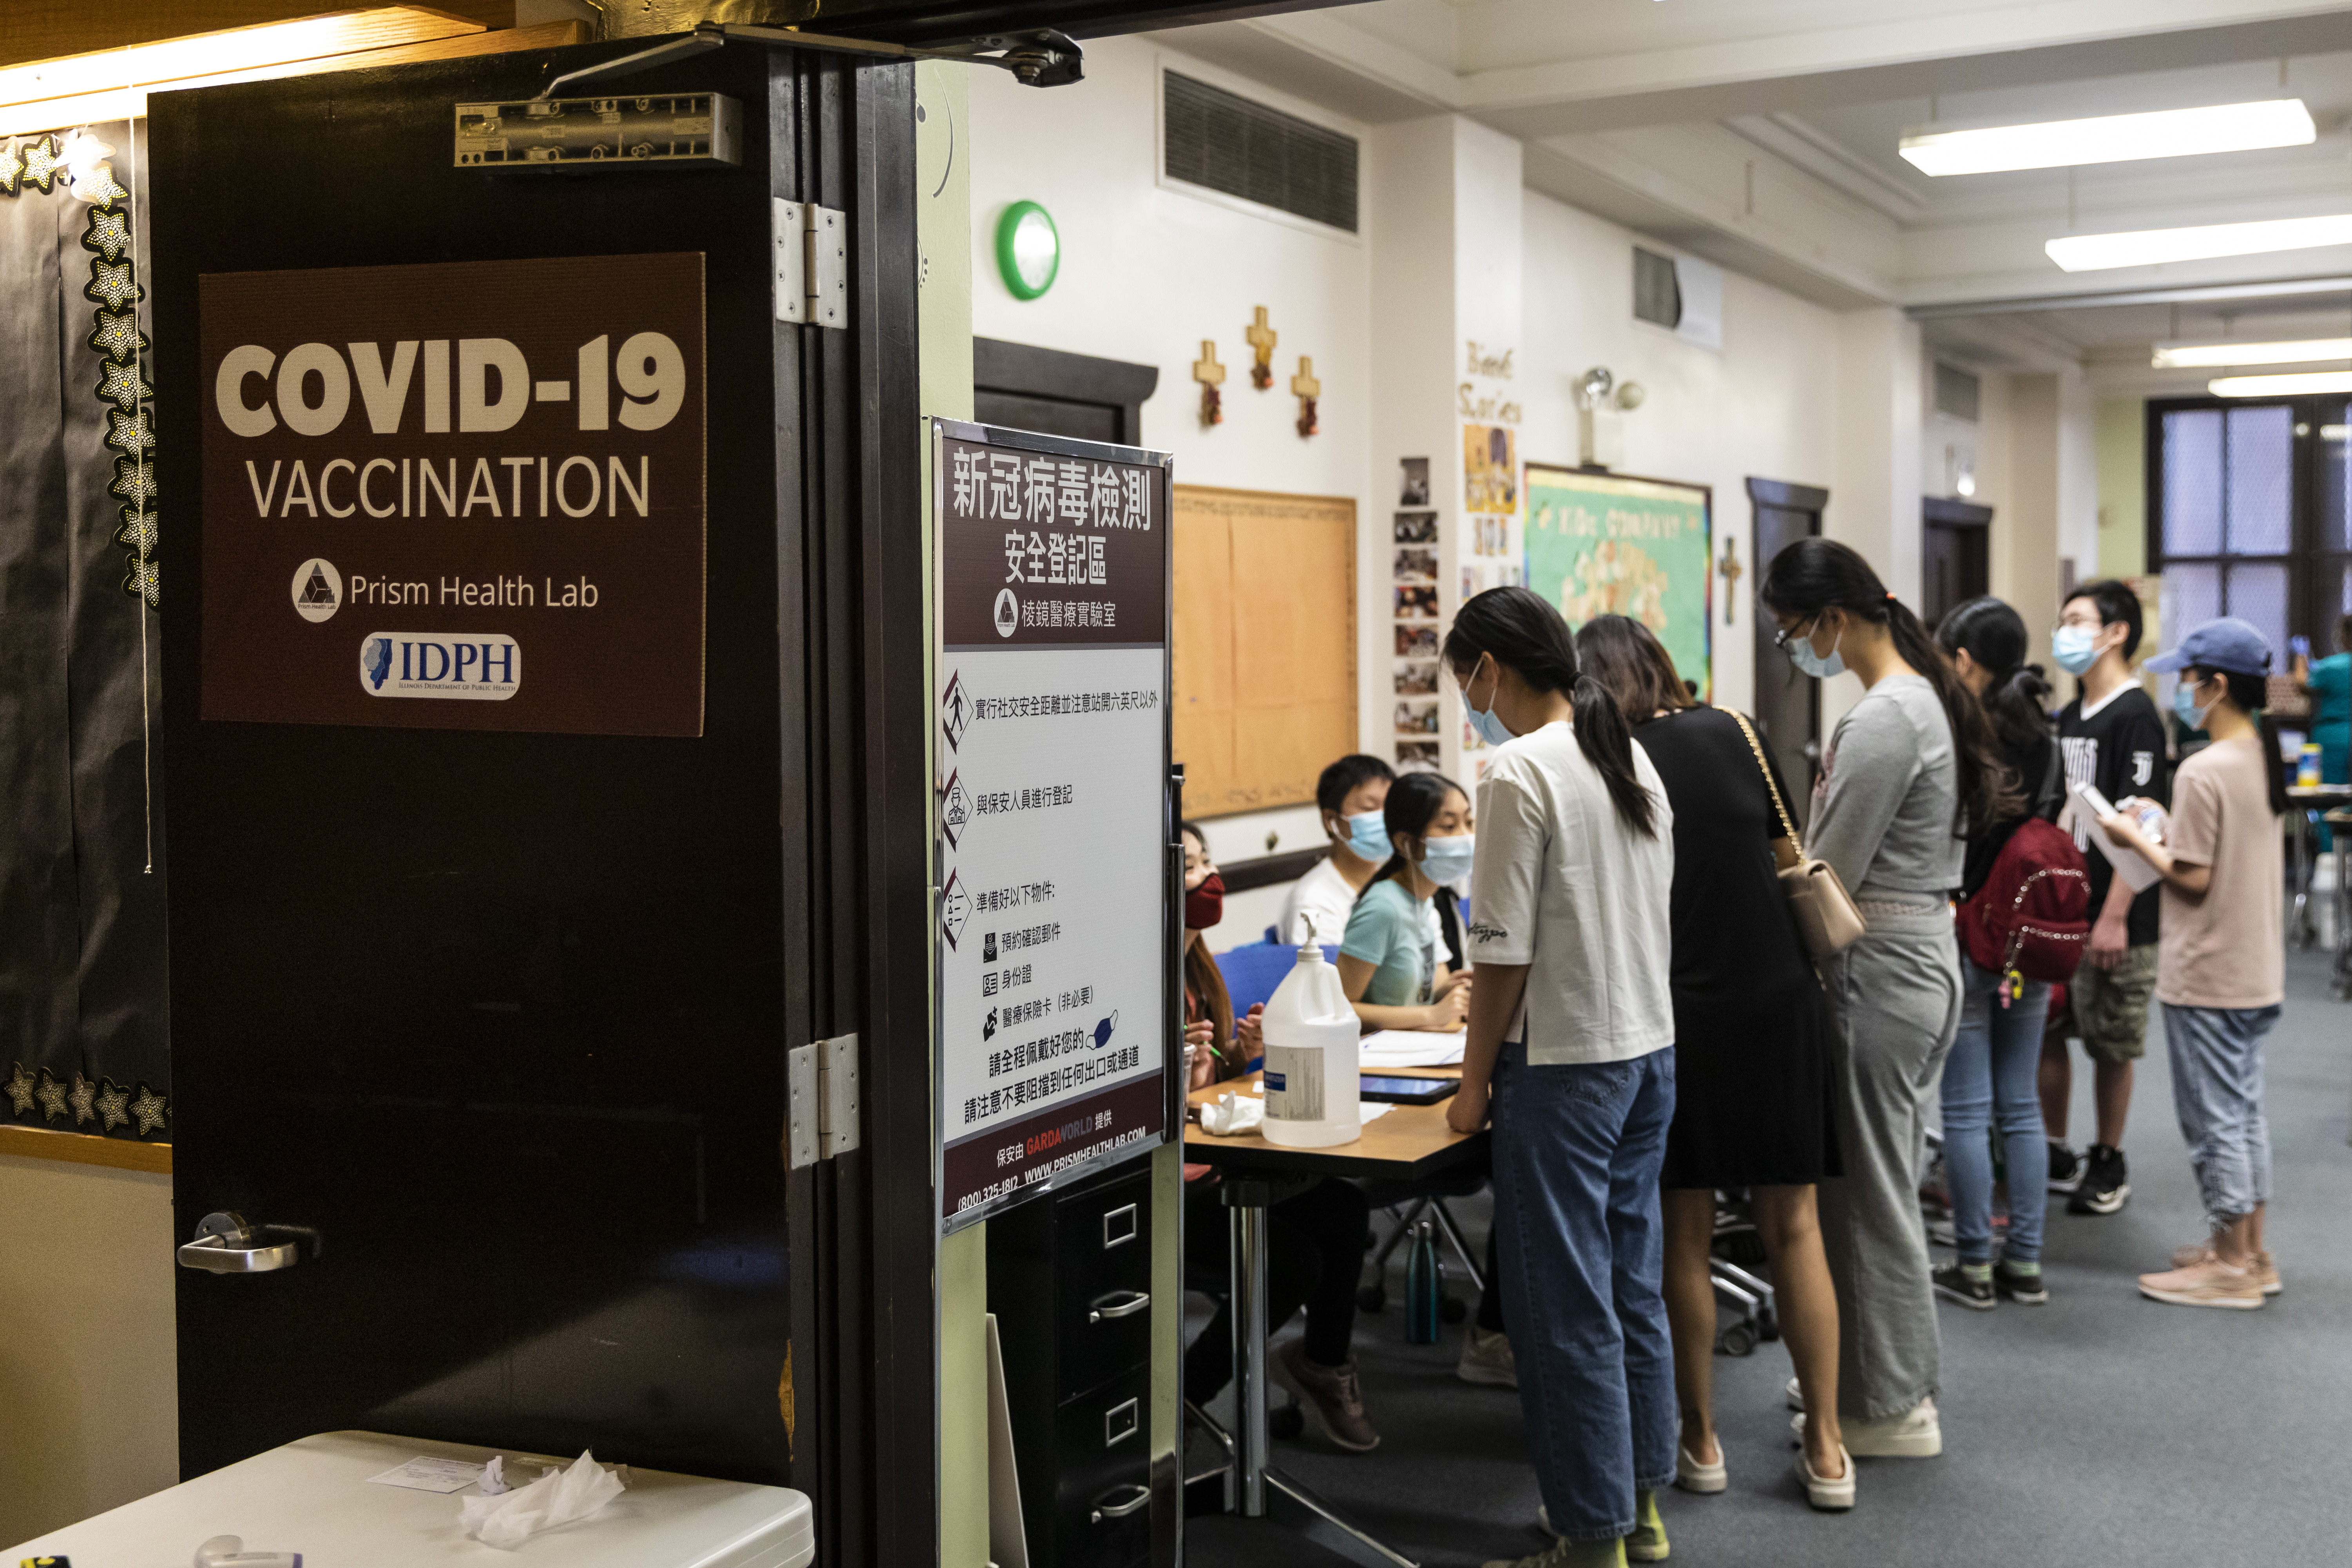 People line up to receive a dose of a COVID-19 vaccine at Pui Tak Center in Chinatown, Monday afternoon, June 28, 2021.   Ashlee Rezin Garcia/Sun-Times